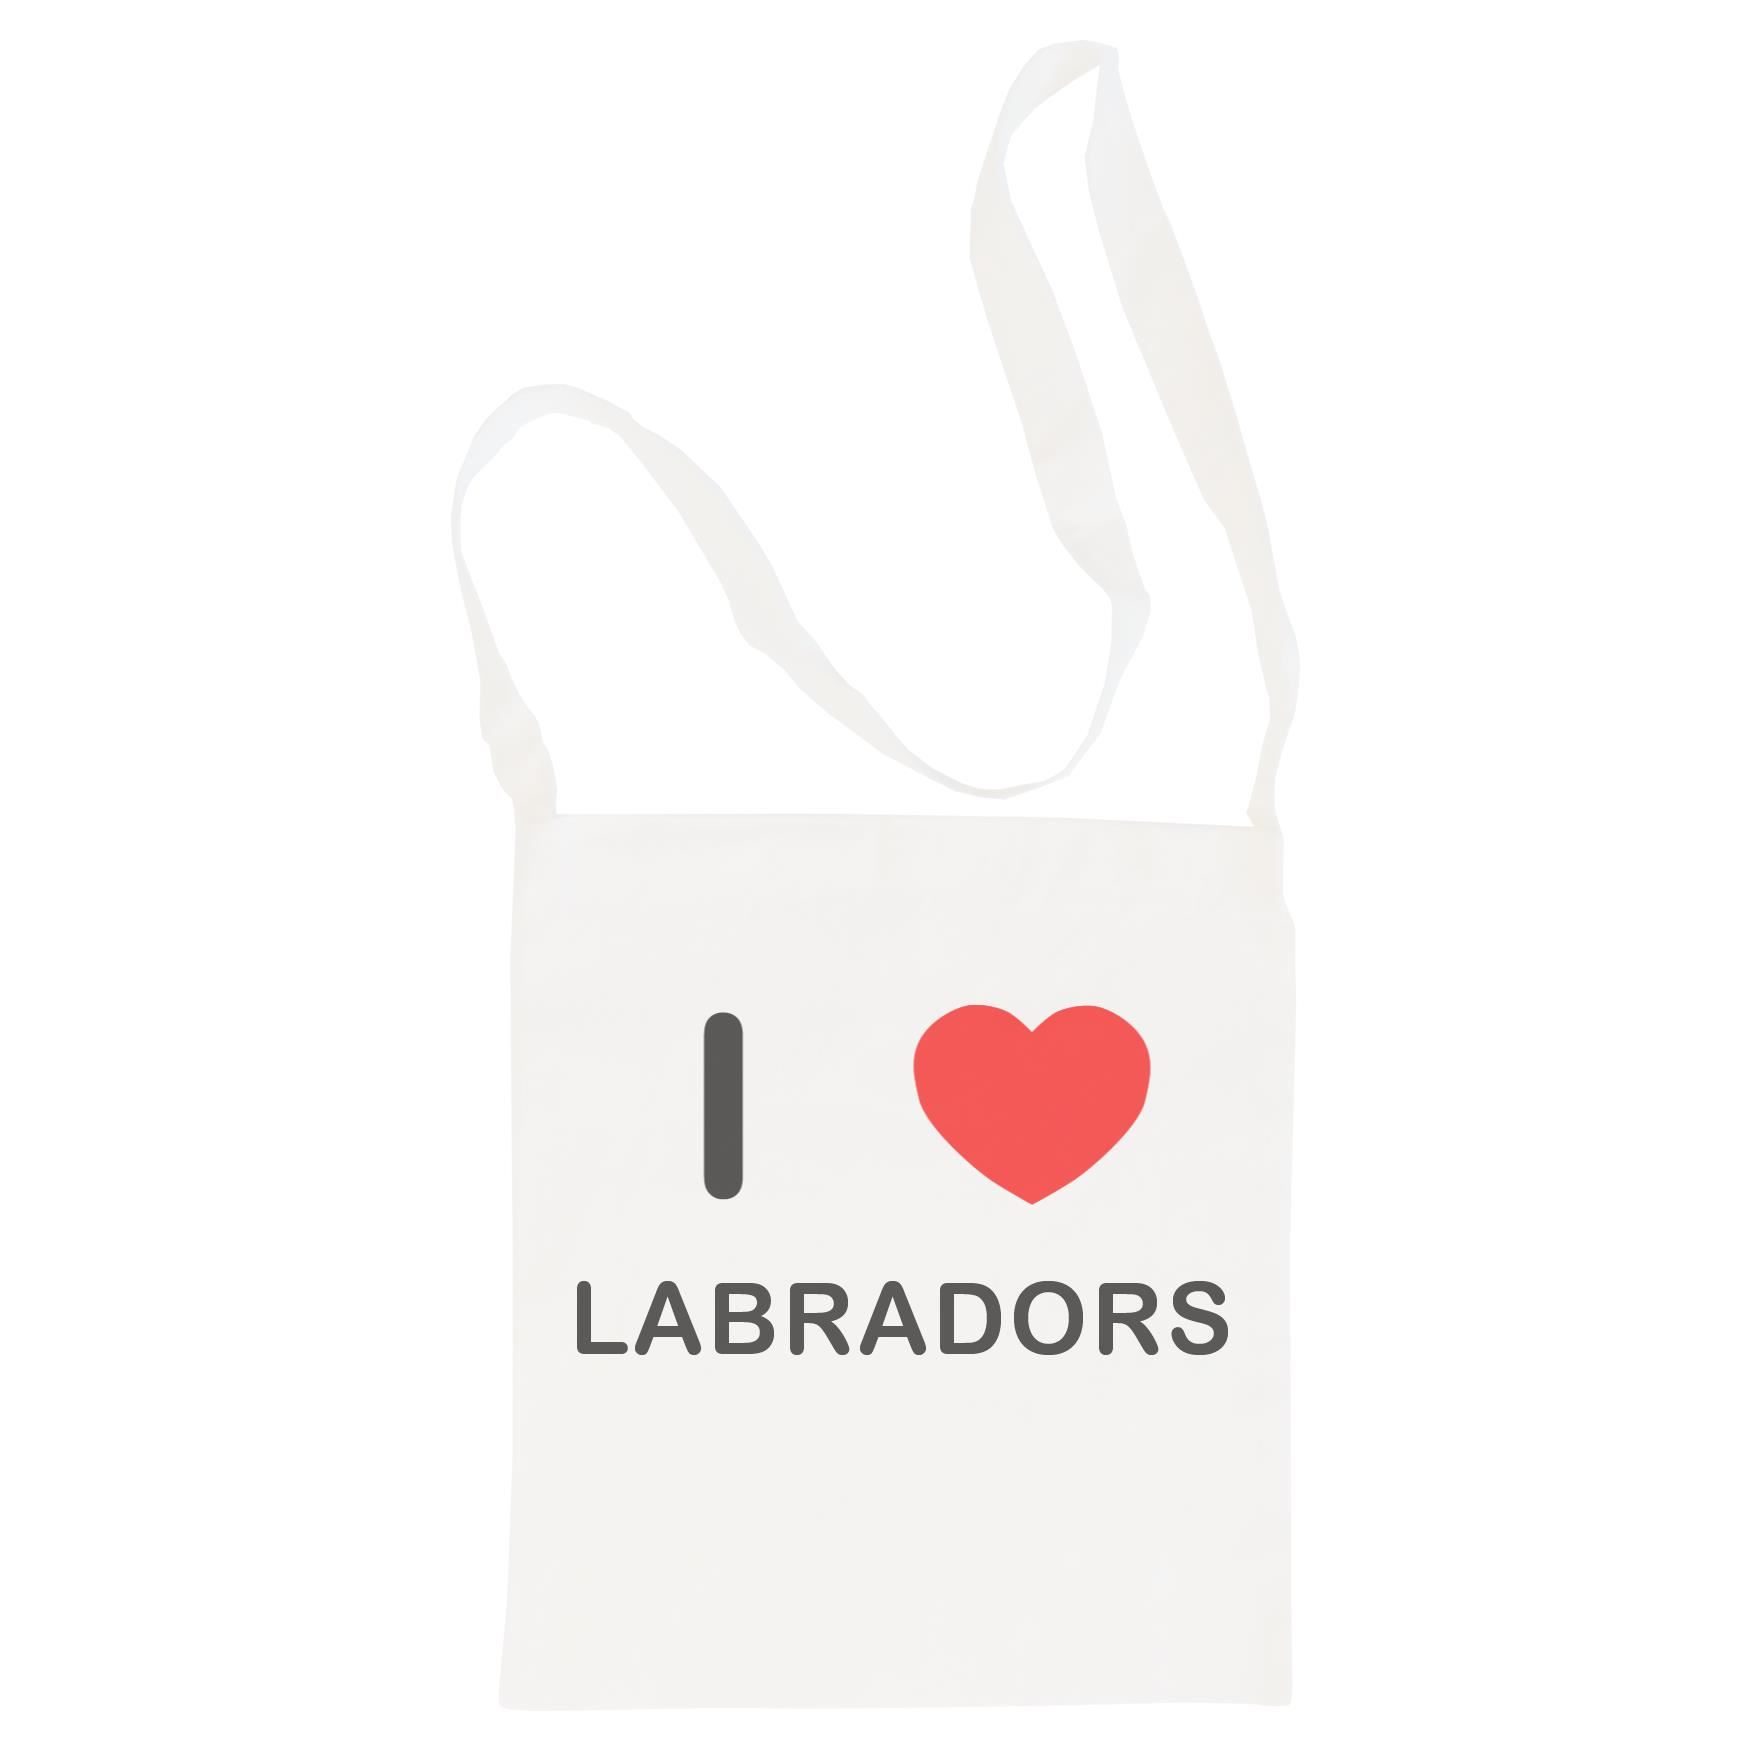 I Love Labradors - Cotton Bag | Size choice Tote, Shopper or Sling